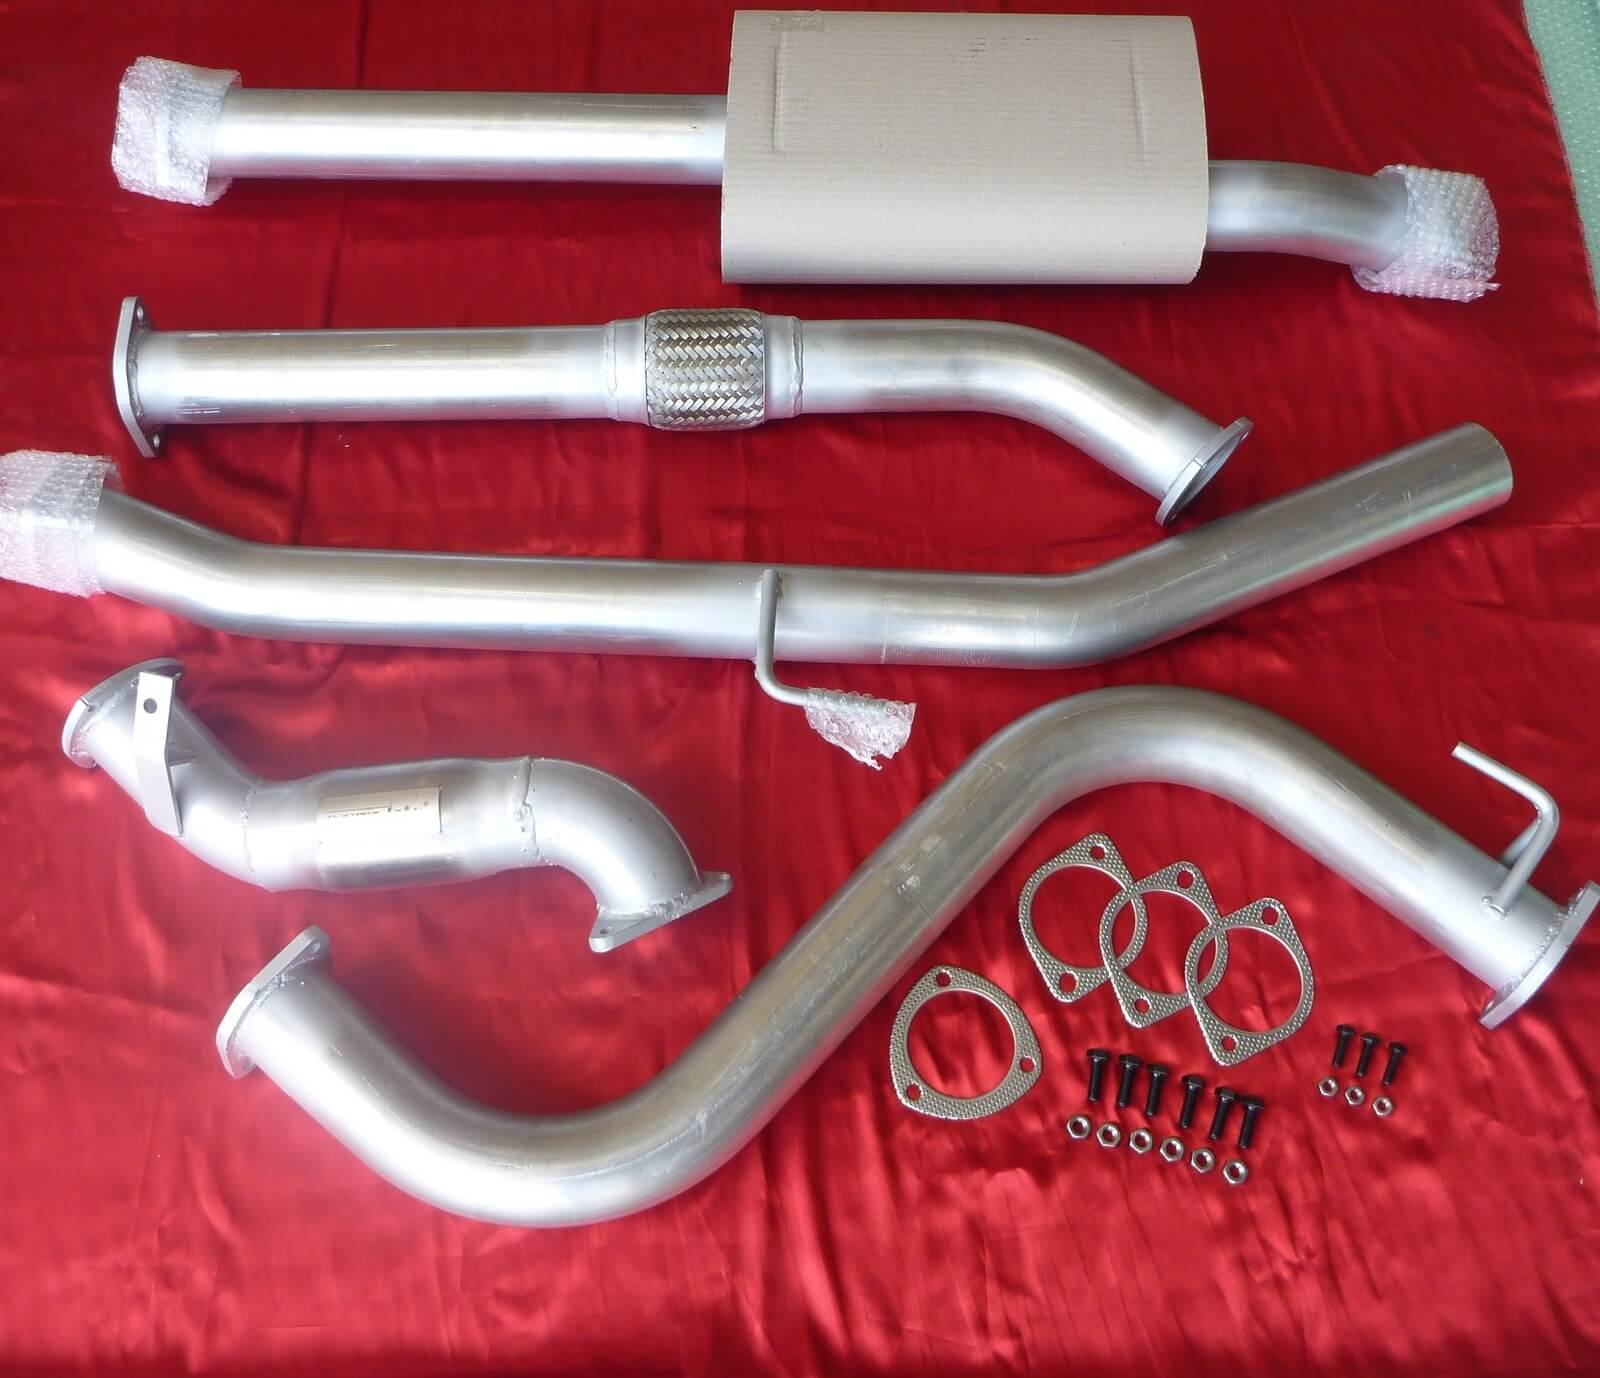 "Nissan Navara D40 3"" Exhaust 4x4 TD 2.5L Ute 2012-2013 4 cylinder manual with cat 409 Stainless Steel 3 inch Turbo Back Ex - Click to enlarge picture."